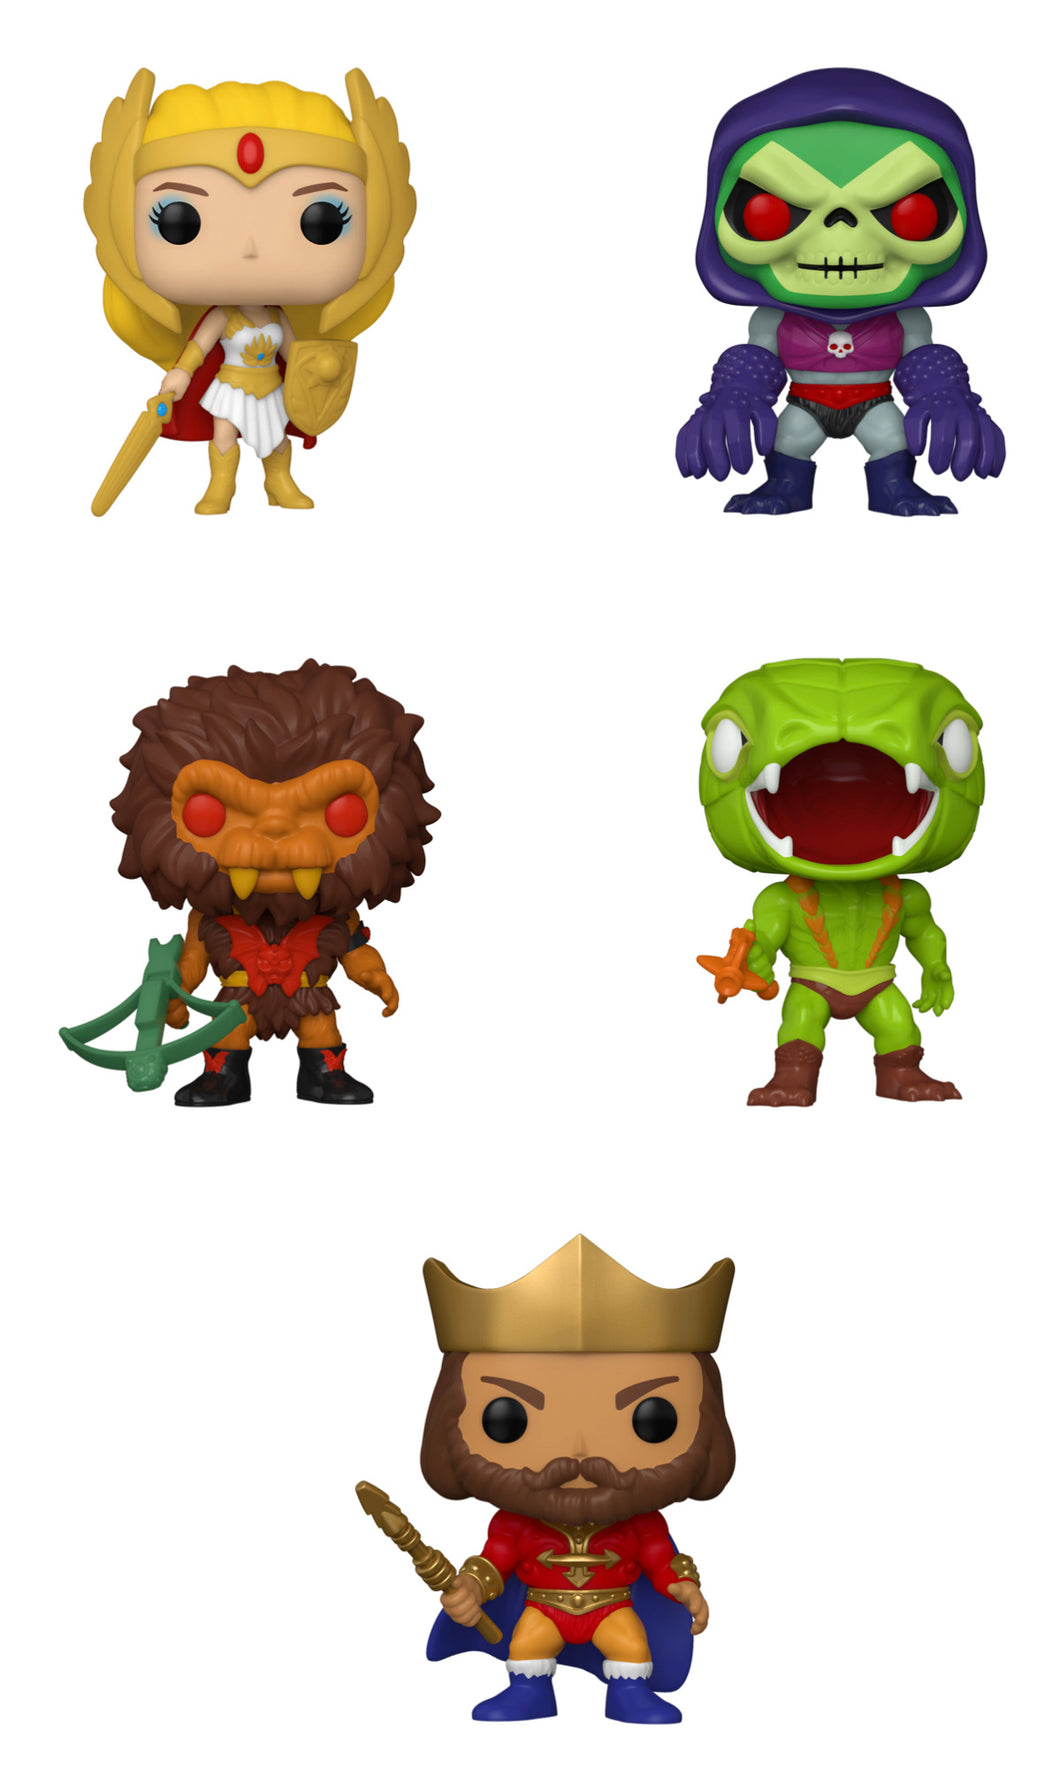 [PRE-ORDER] Funko Pop! Animation: MOTU (Masters of the Universe) S7